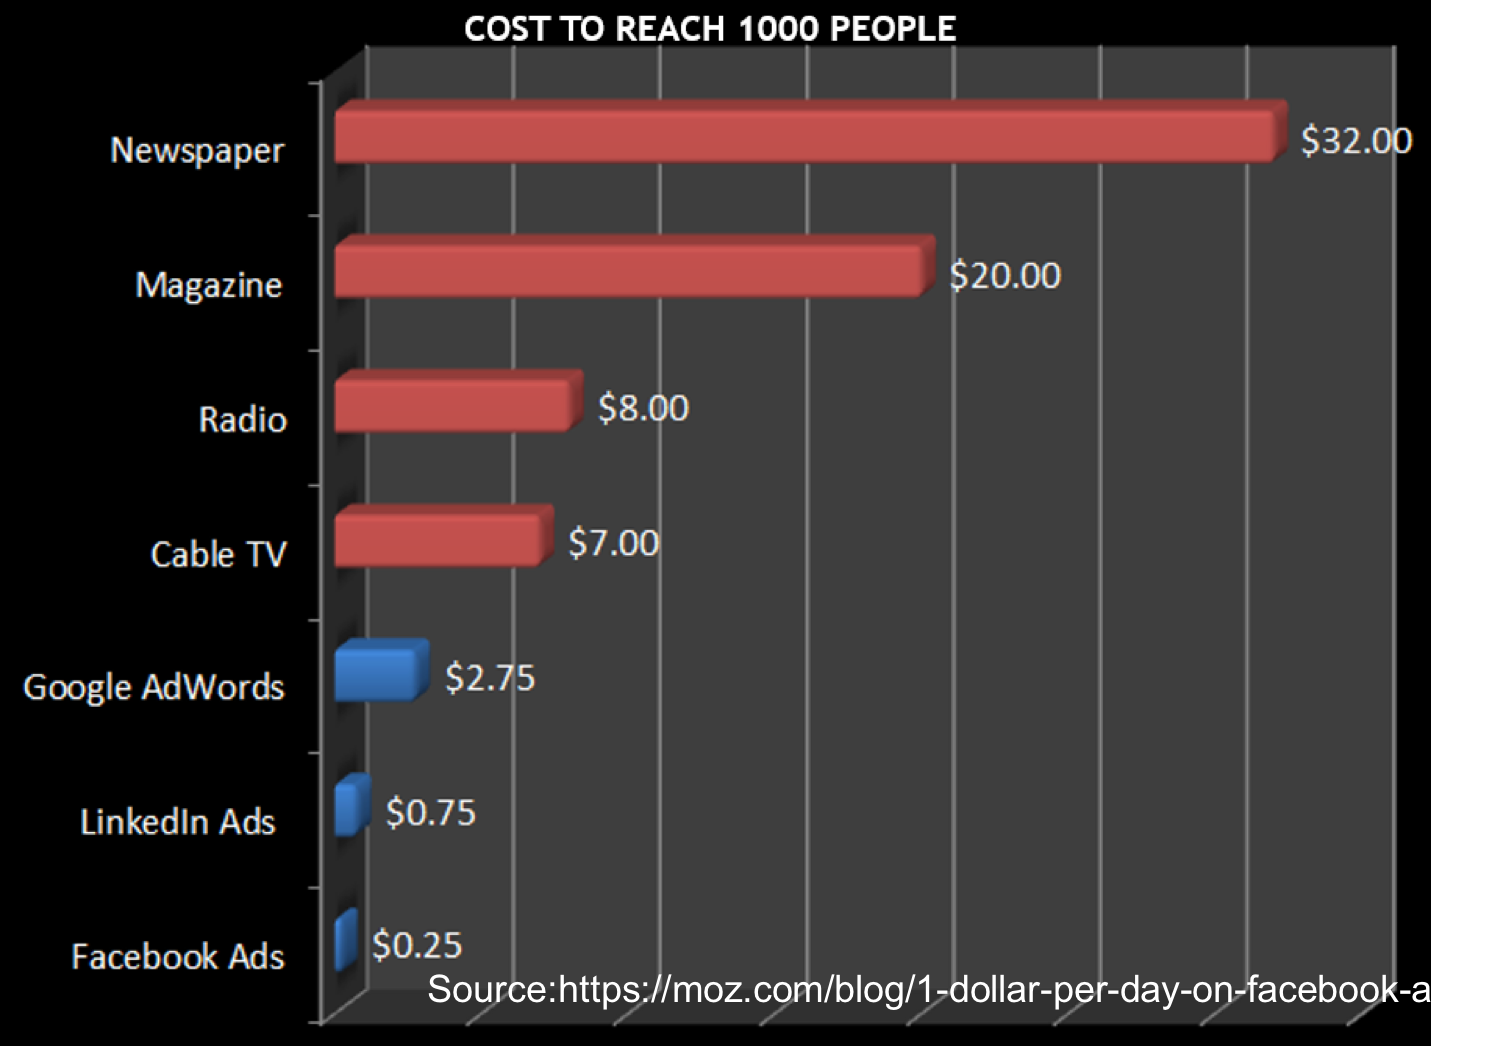 cost to reach 1,000 people analytics that profit original source www.moz.com.png